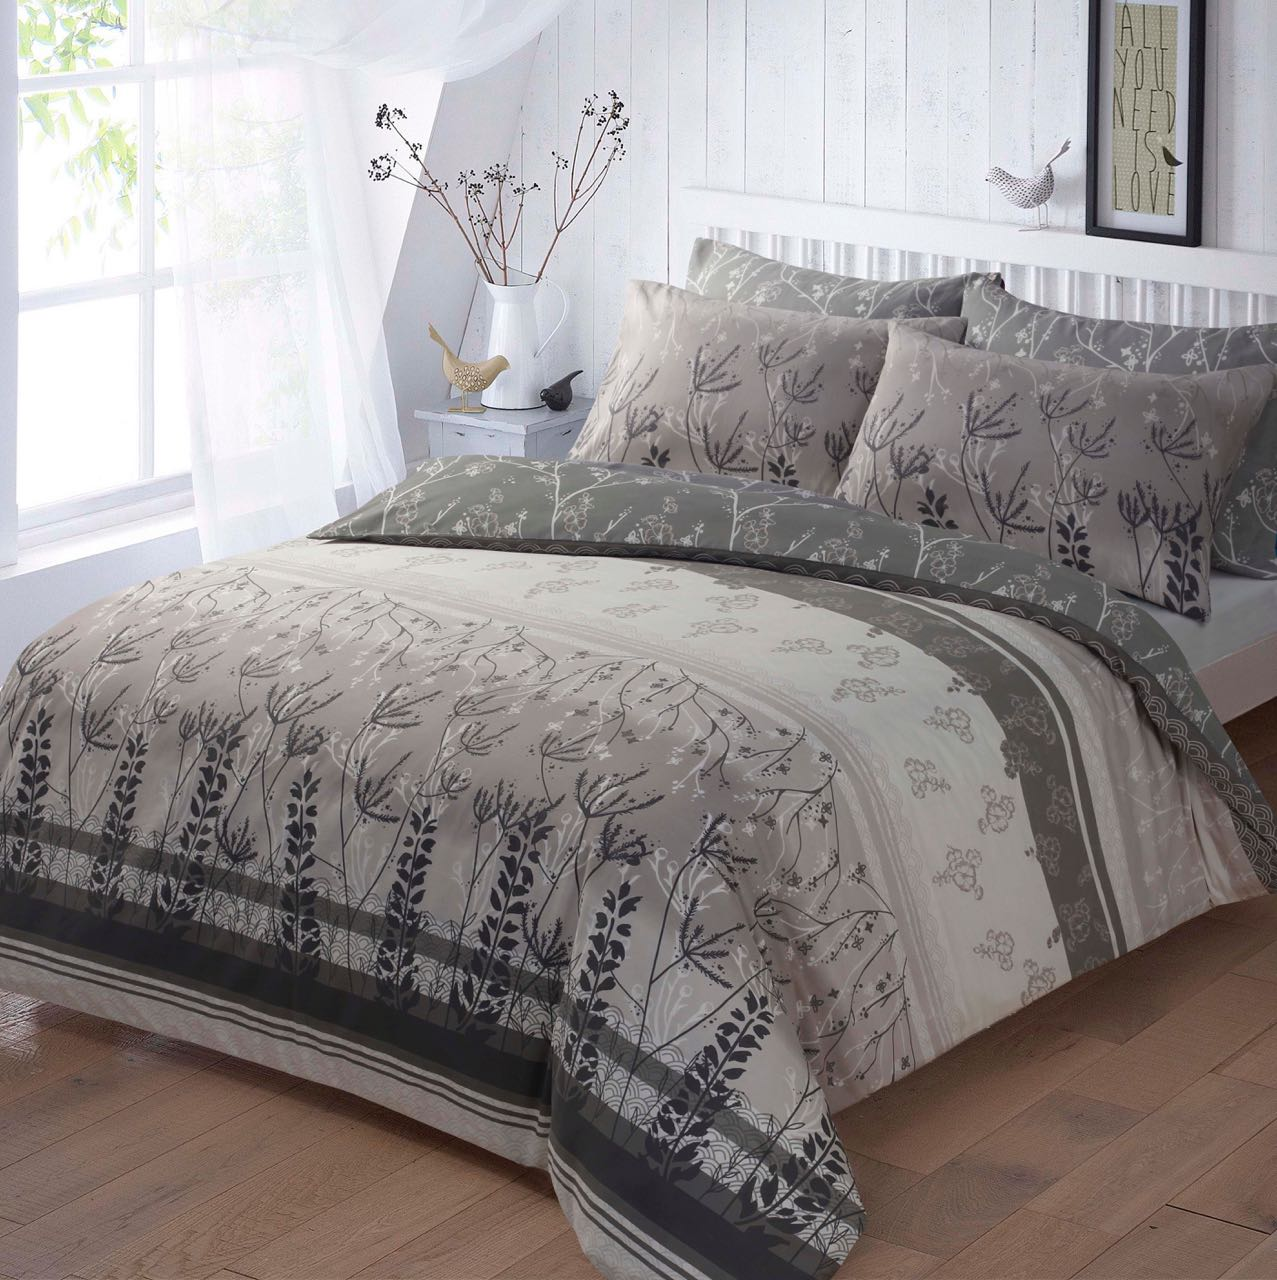 Garden Print Duvet Set - Single.